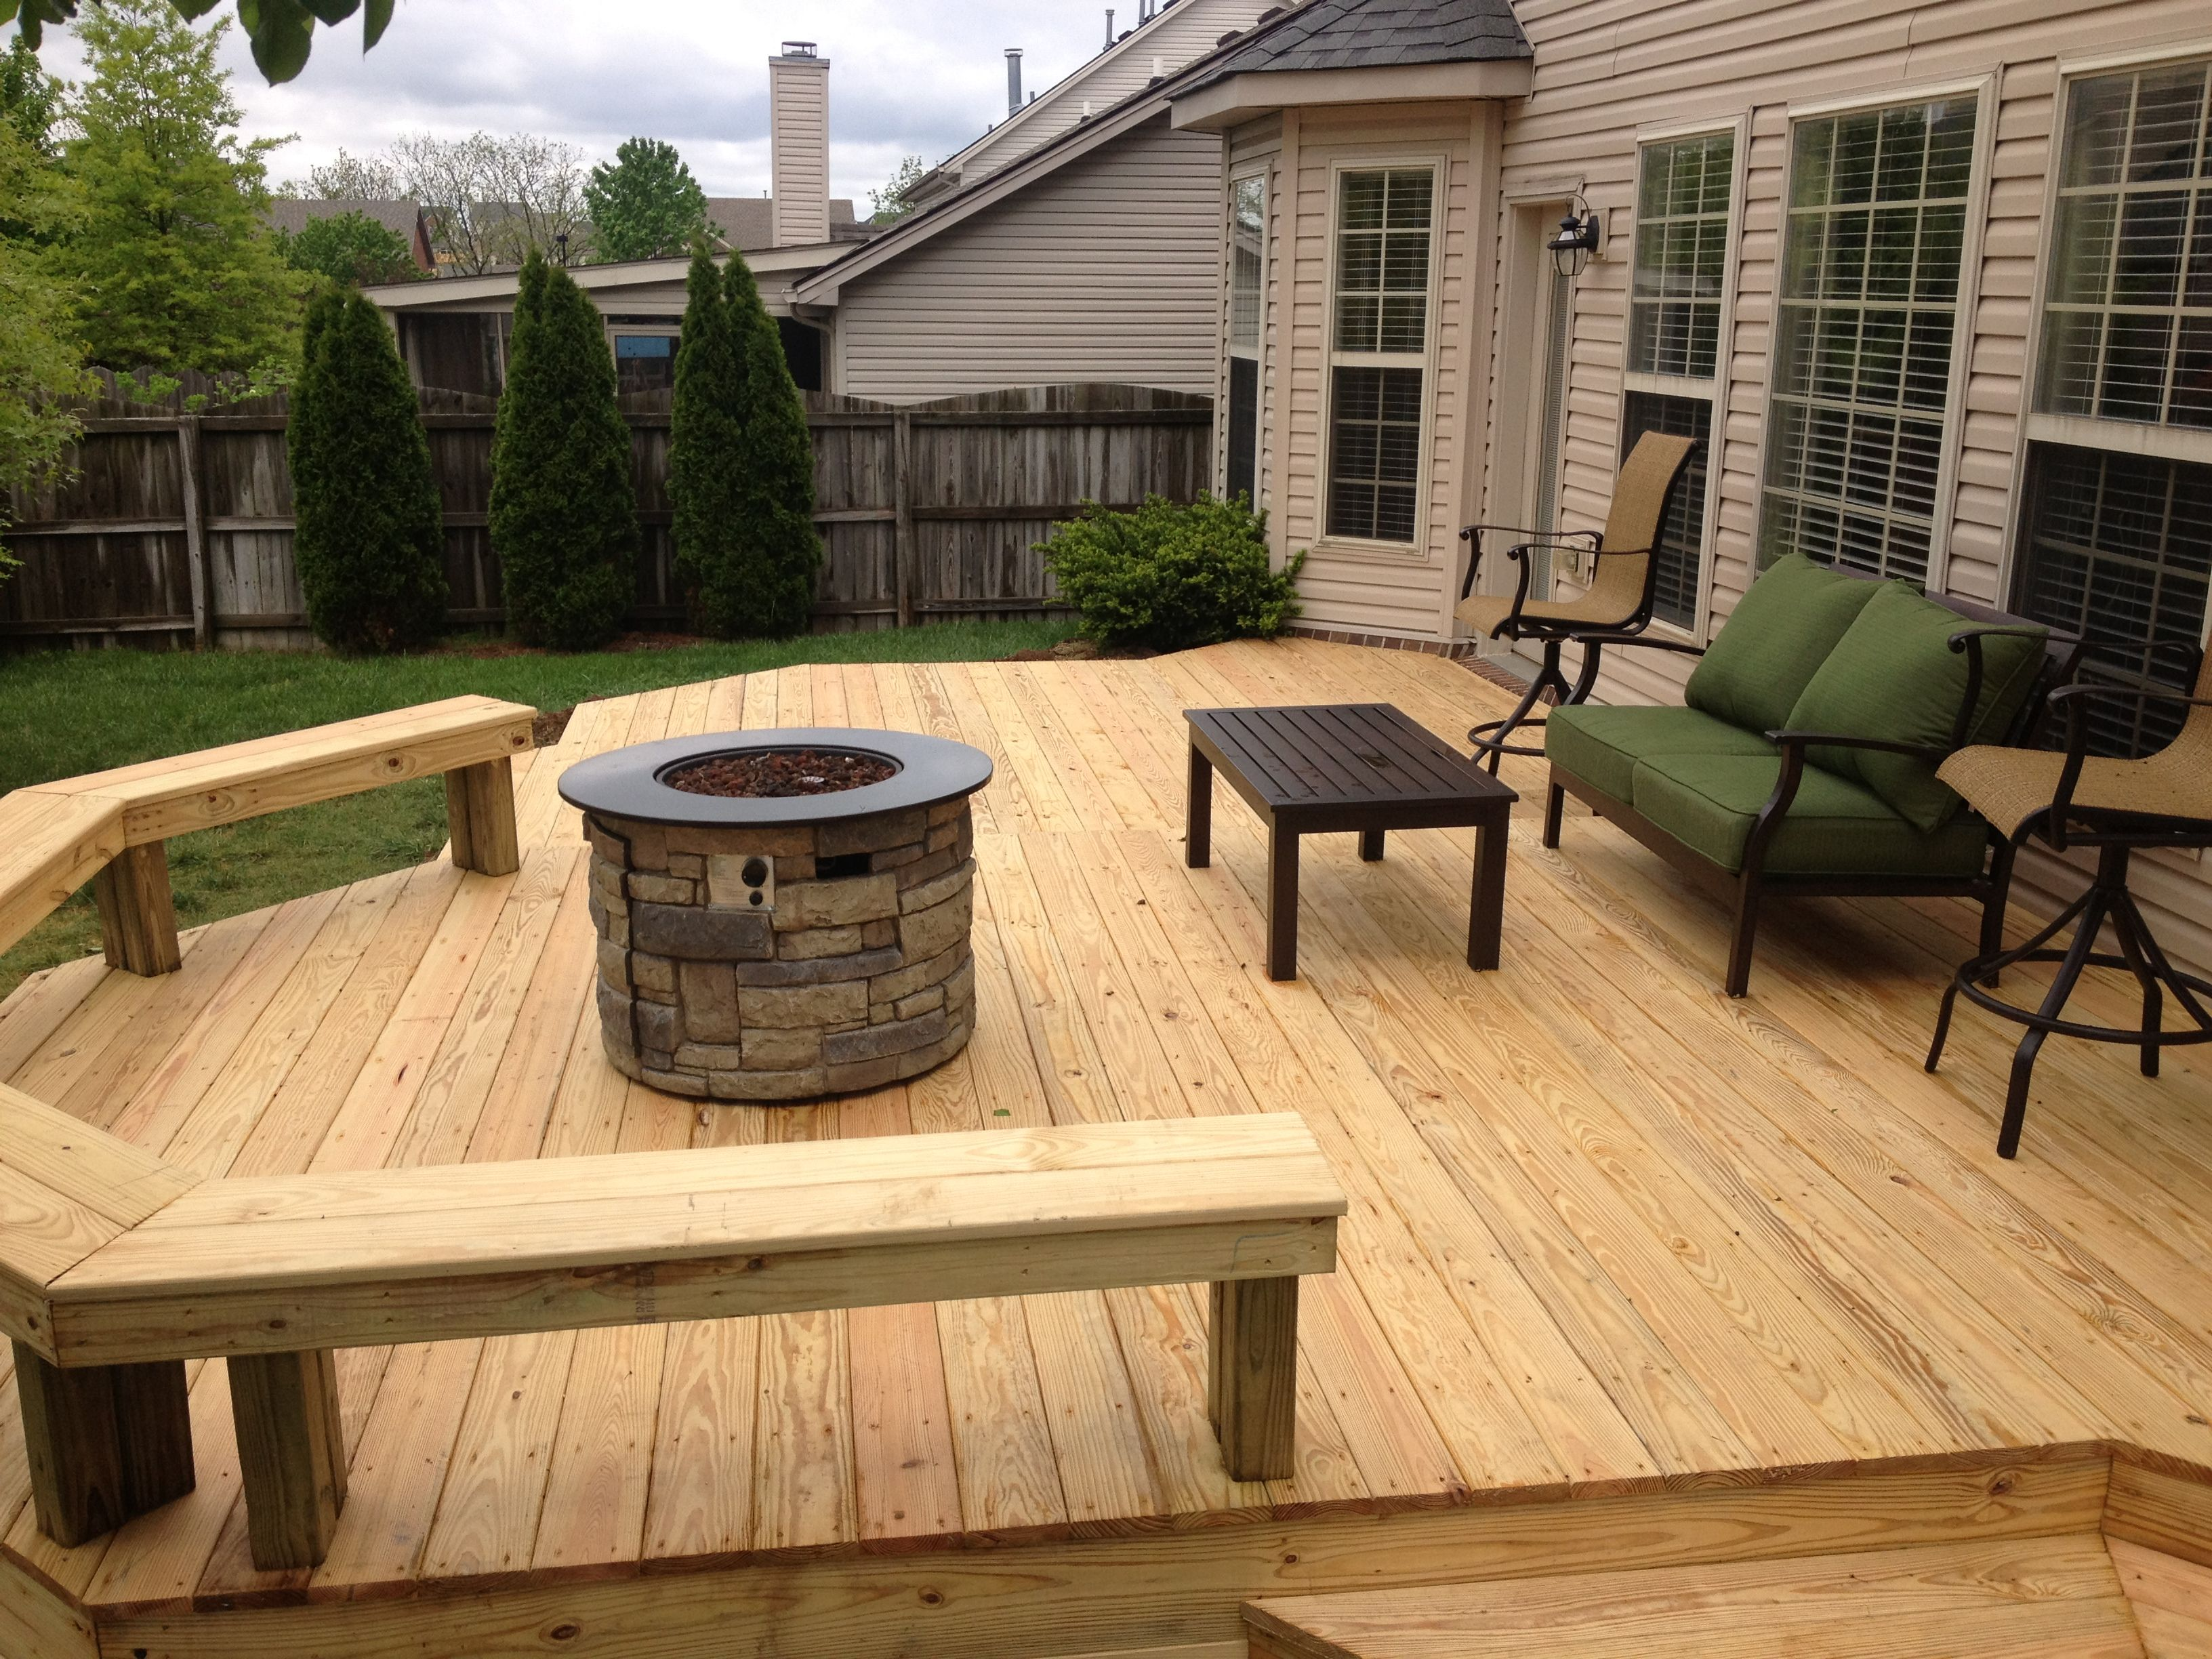 Pin By Deckadent Designs On Wood Decks Outdoor Seating Areas